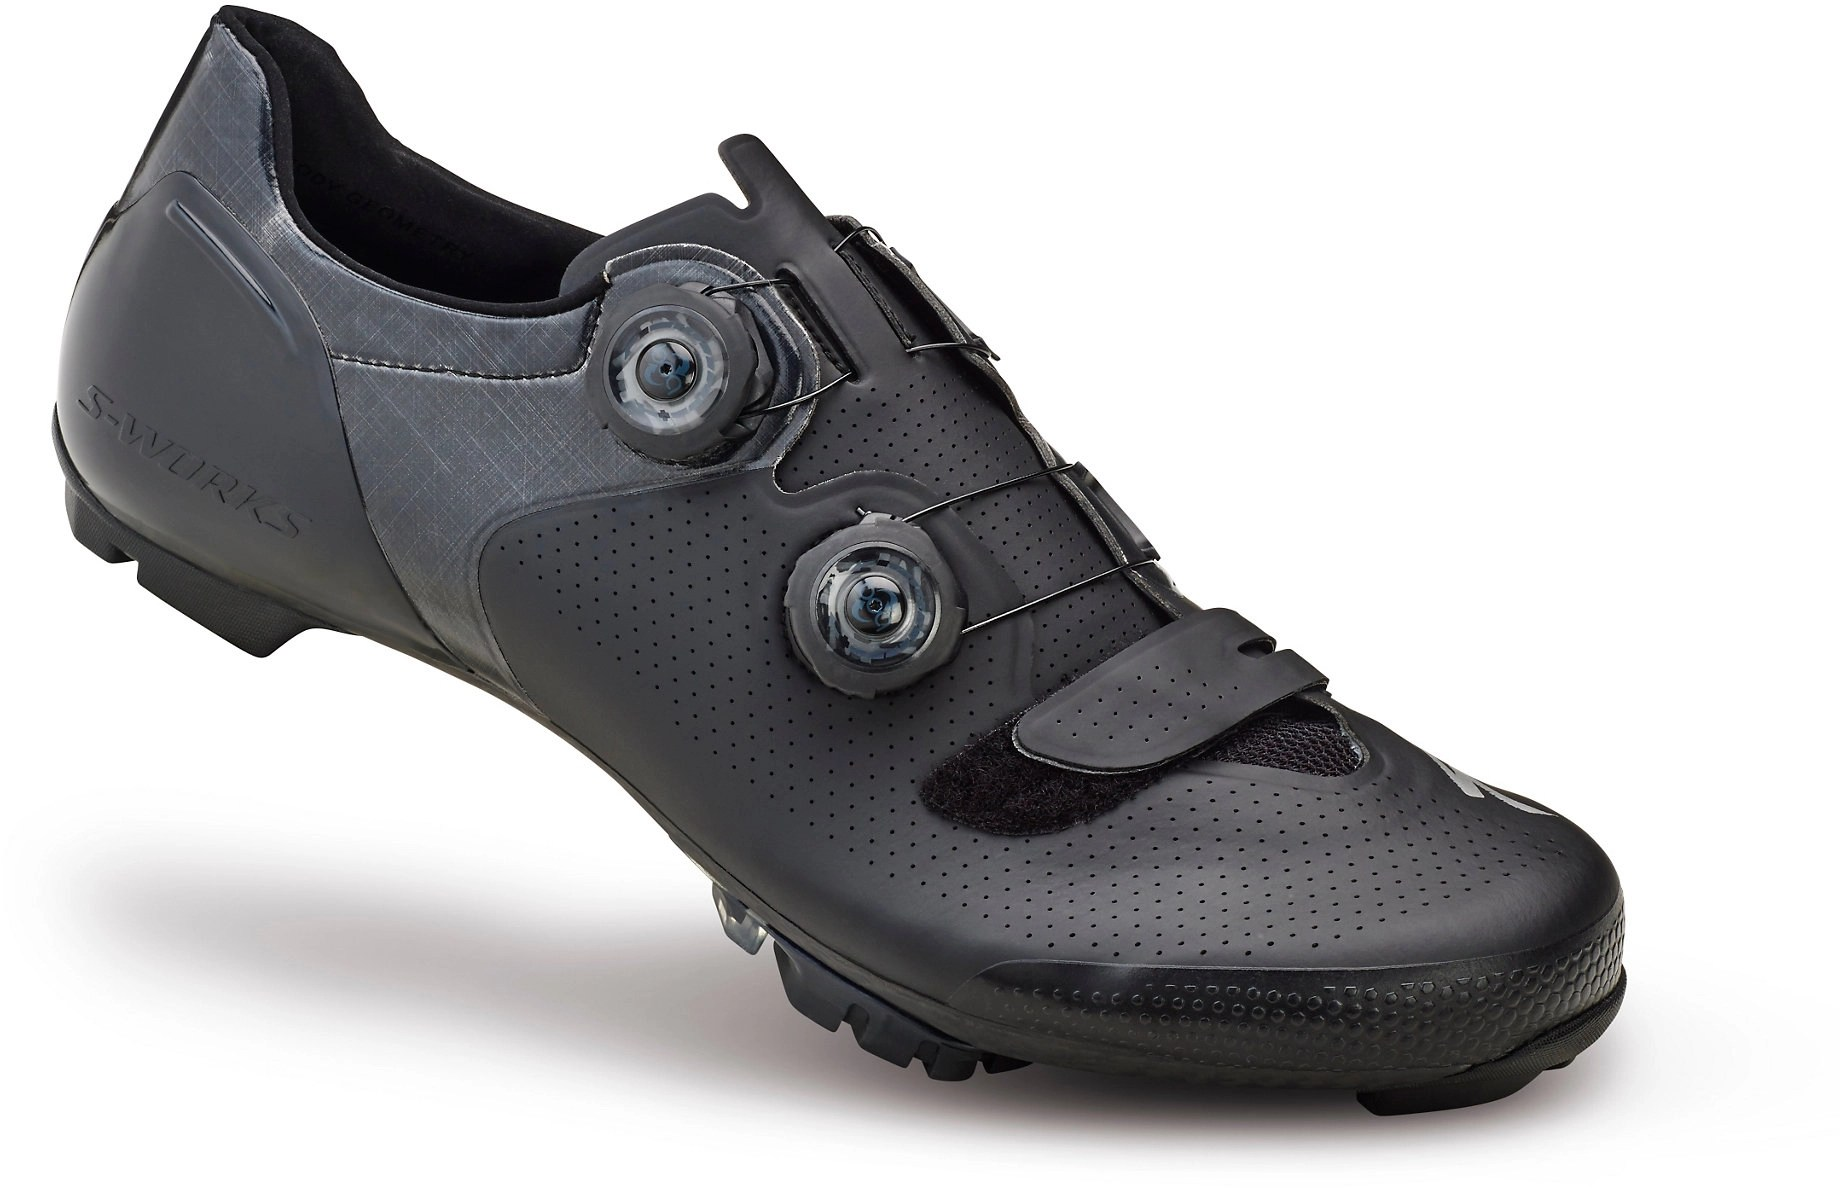 Boa Xc Shoes Singletrack Magazine